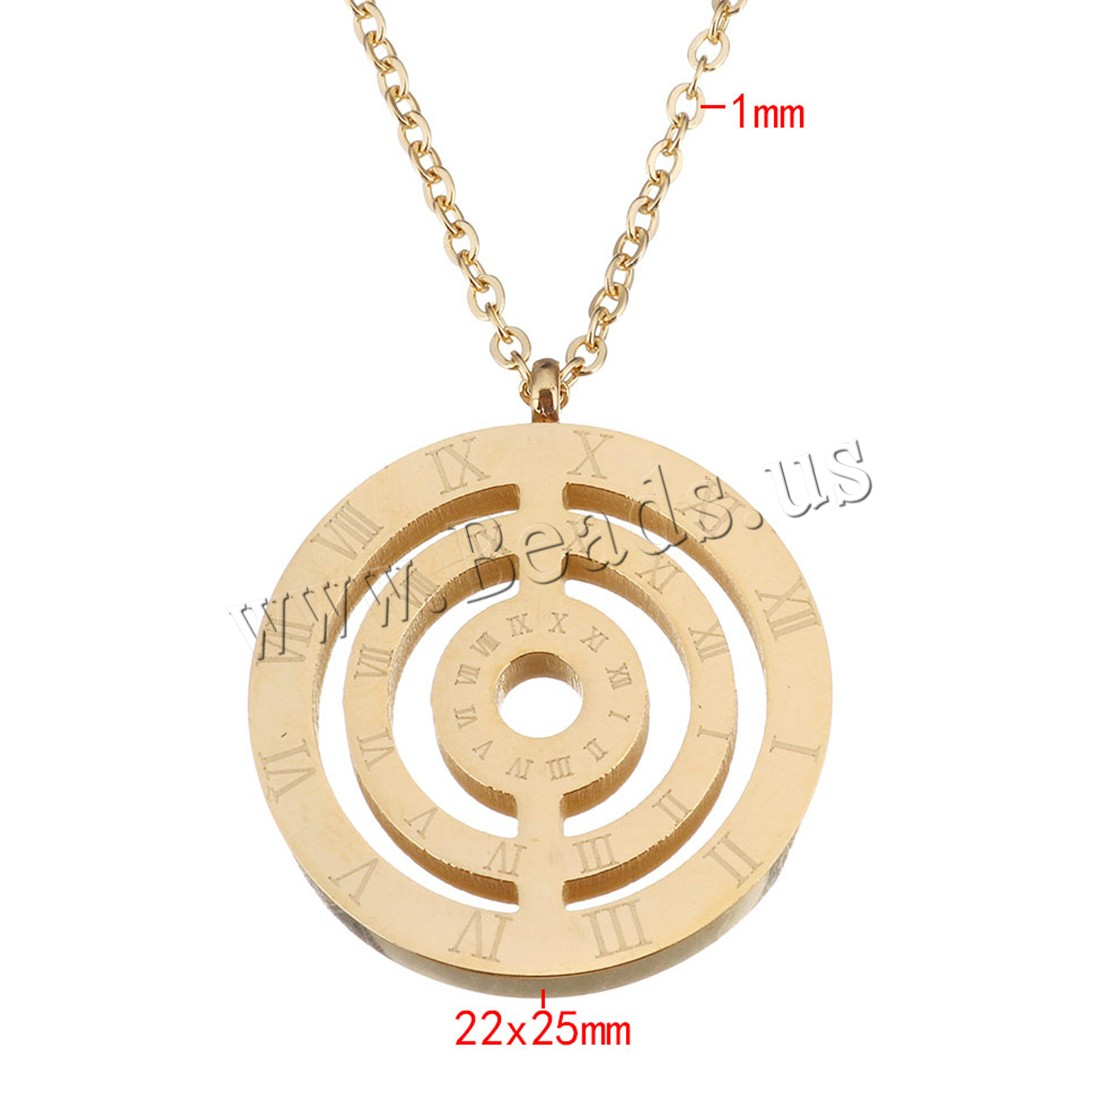 Buy Stainless Steel Jewelry Necklace gold color plated roman number & oval chain & woman 22x25mm 1mm Length:Approx 18 Inch Sold Lot